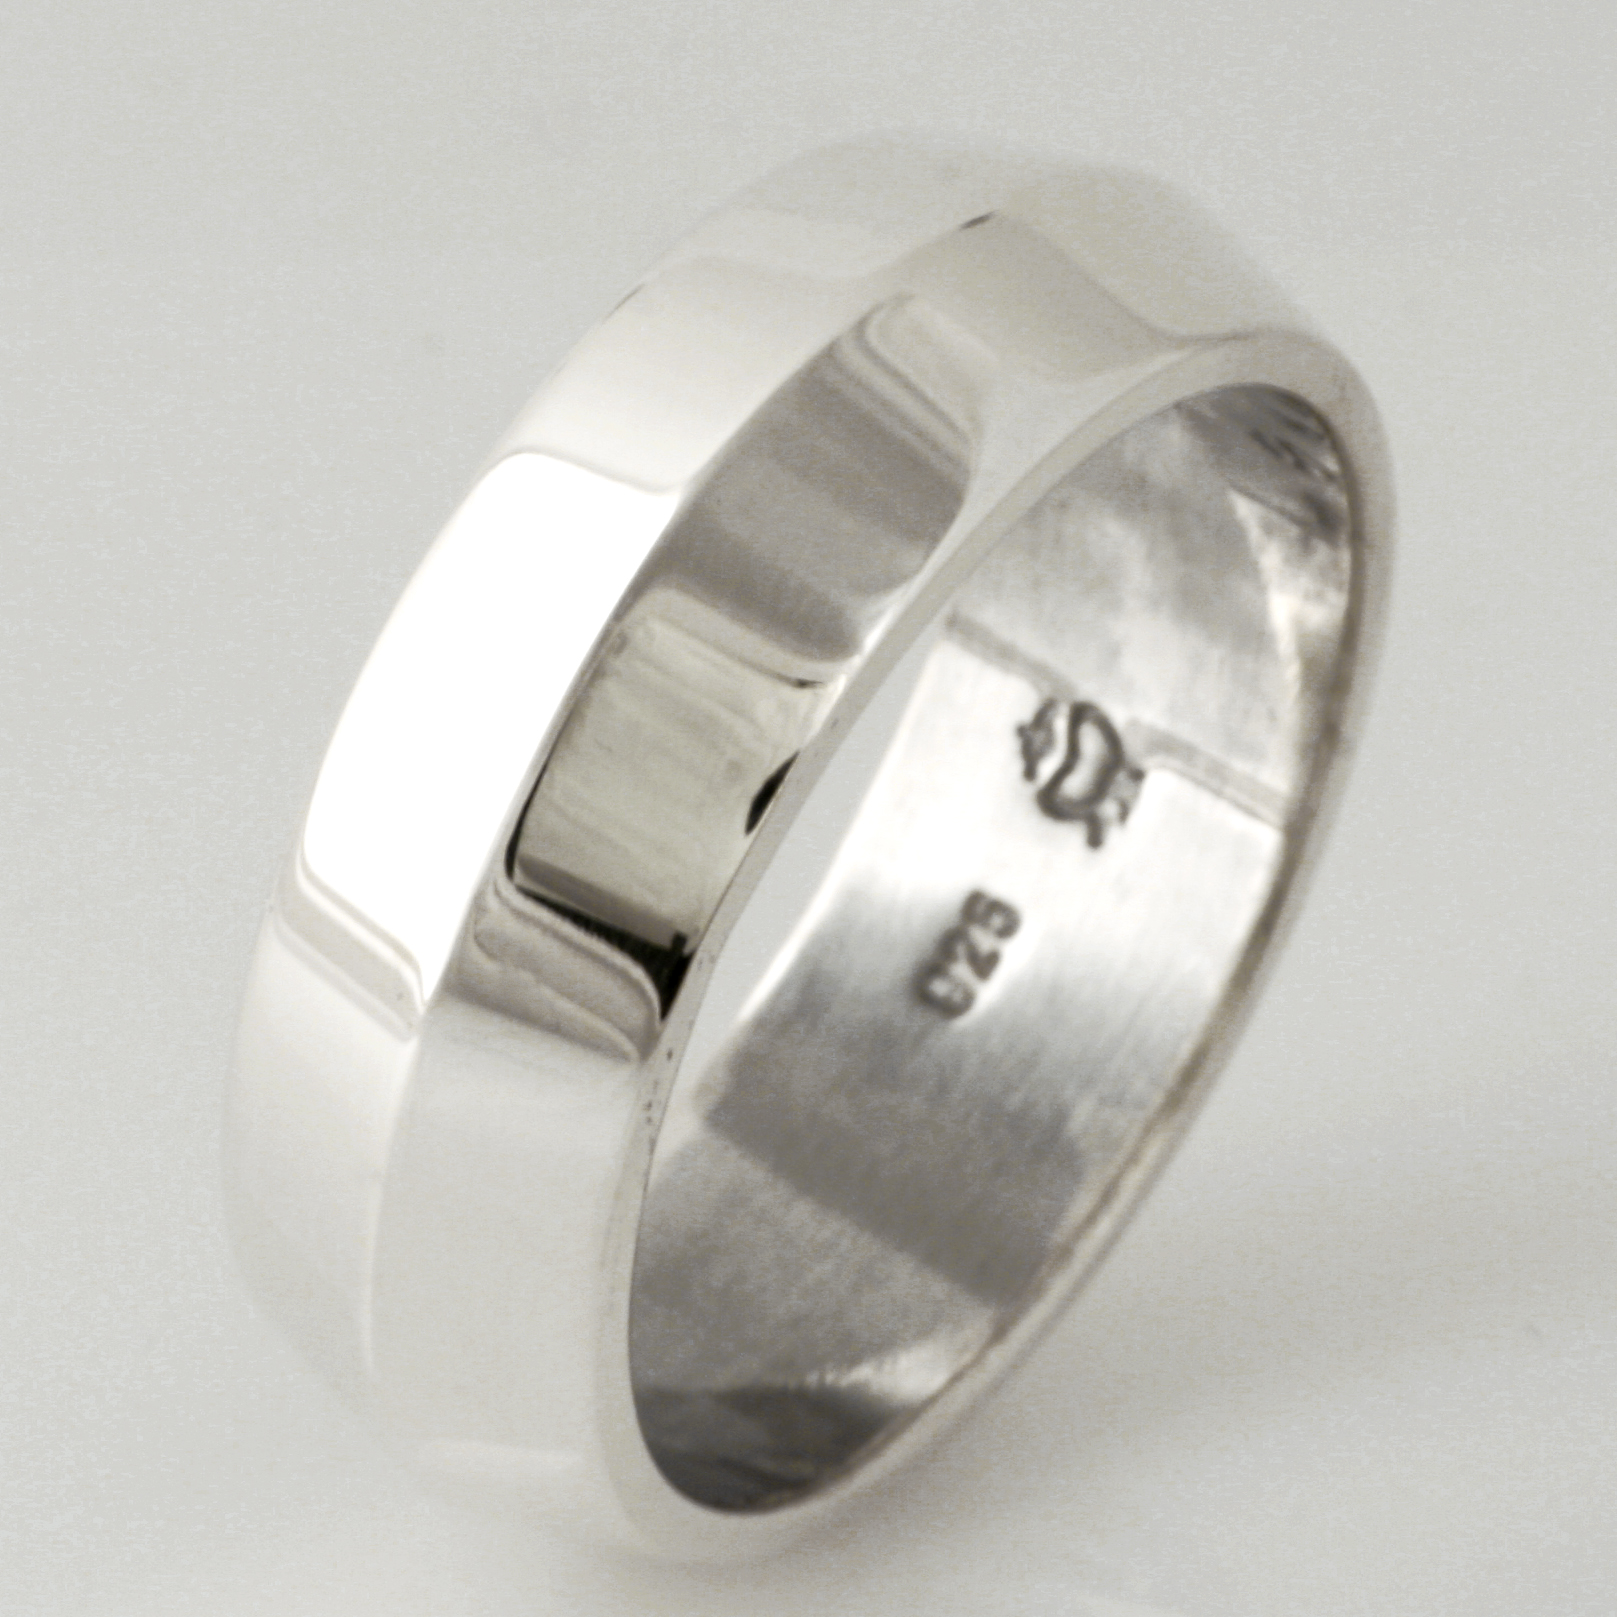 Handmade gents sterling silver wedding ring